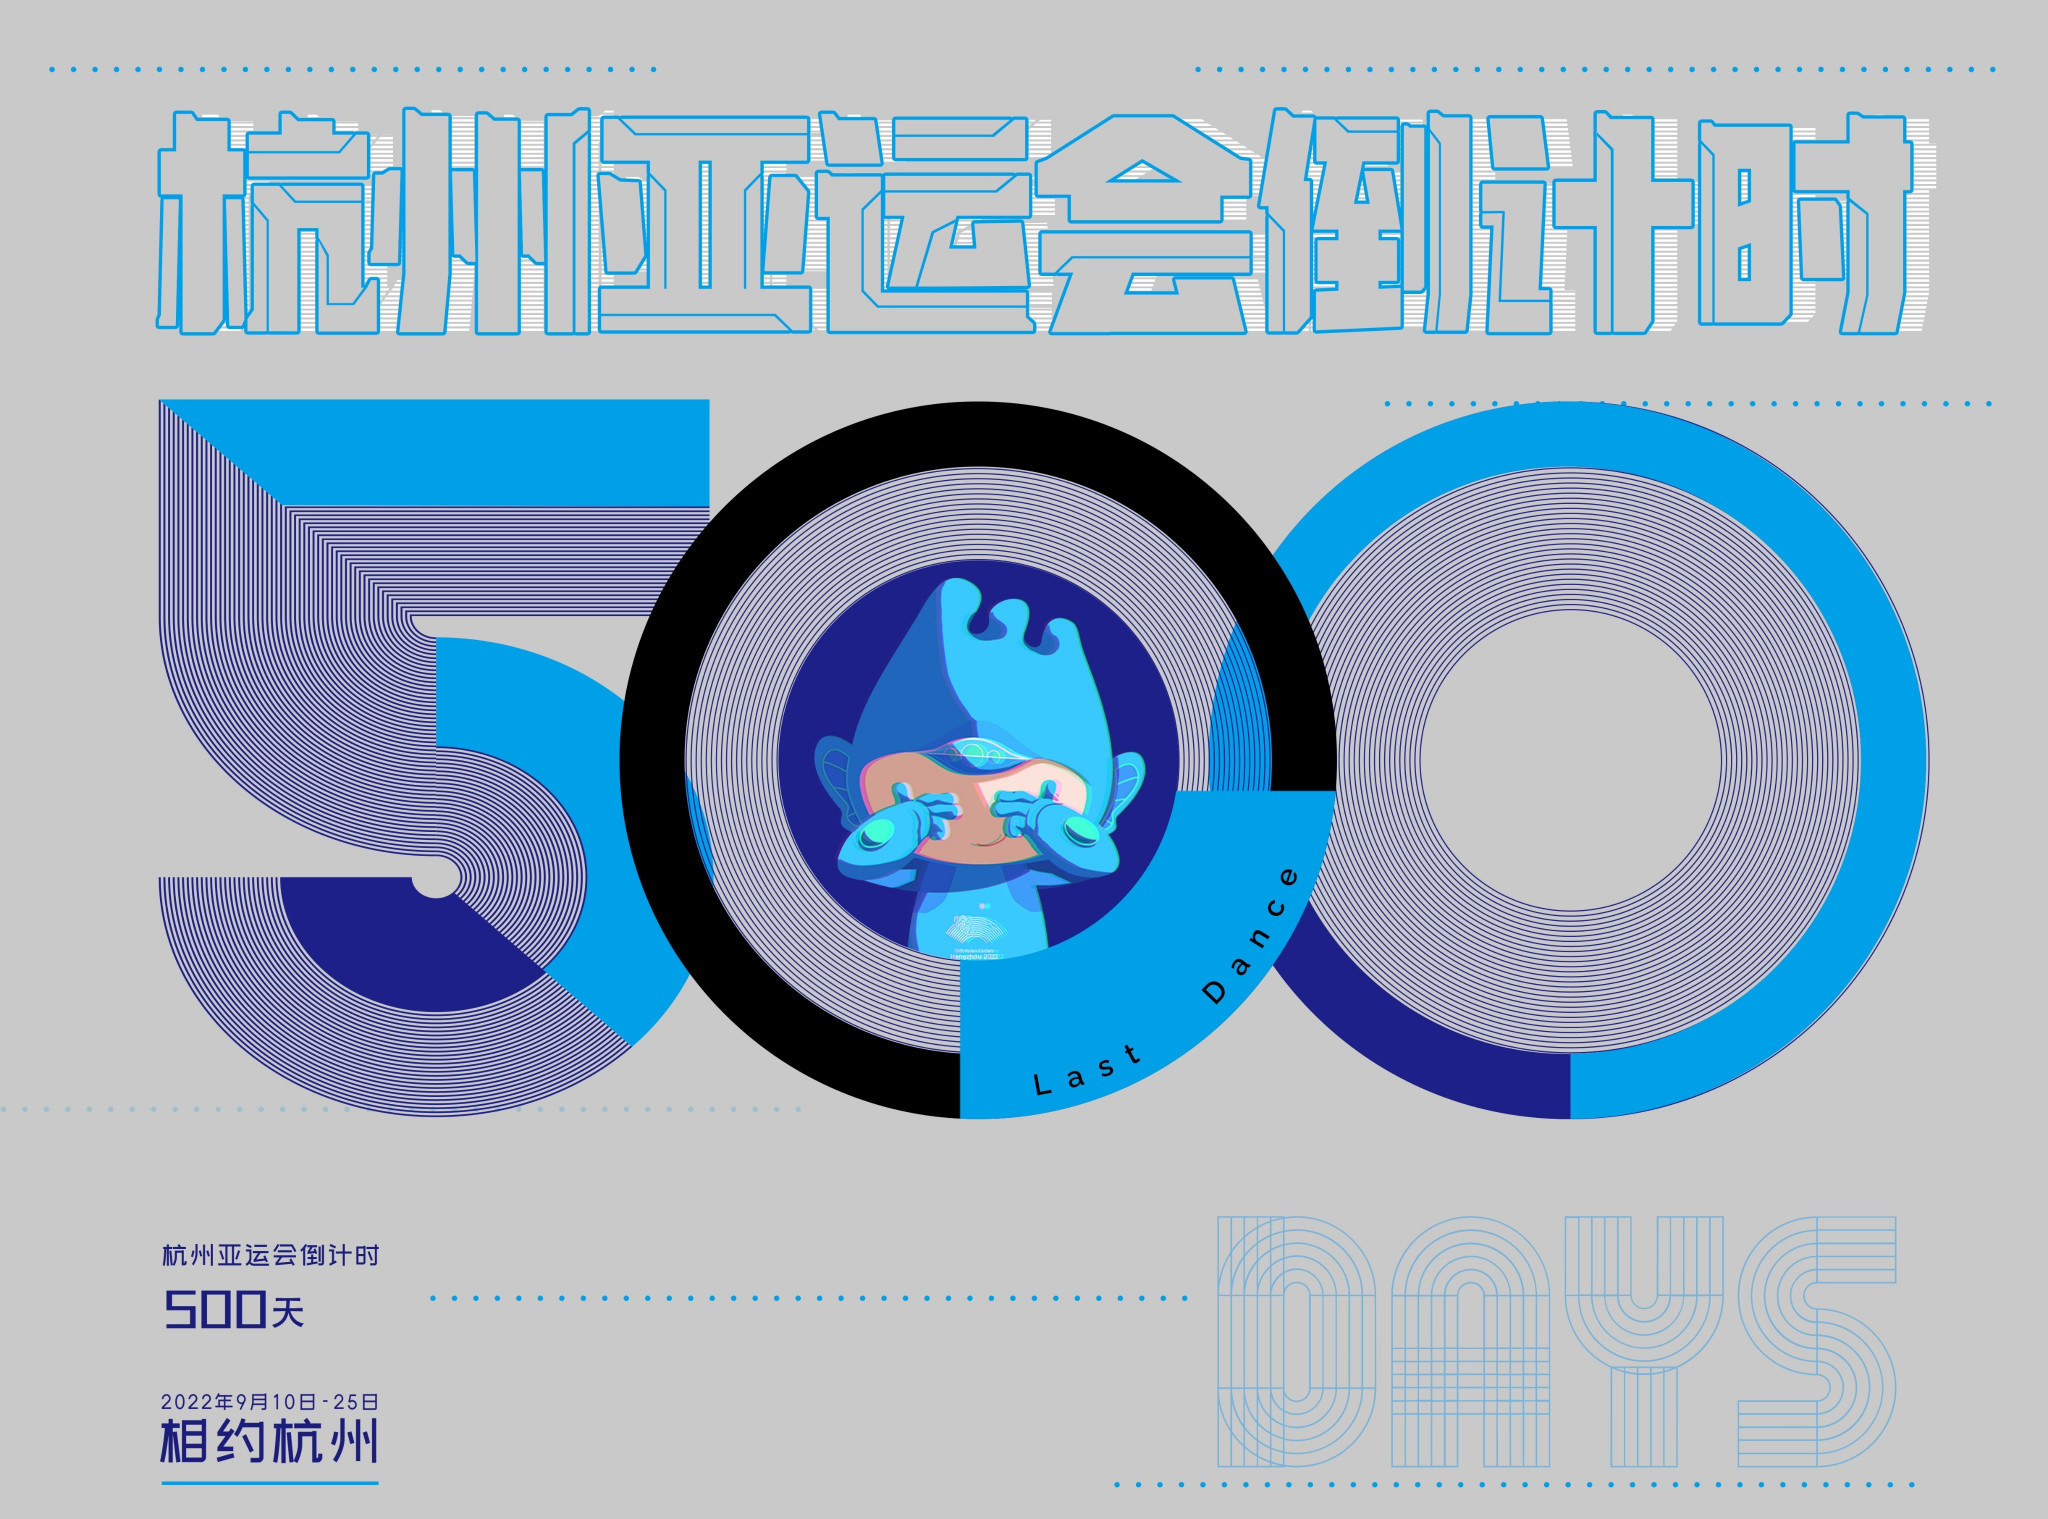 Countdown clocks light up to mark 500 days until Hangzhou 2022 Asian Games